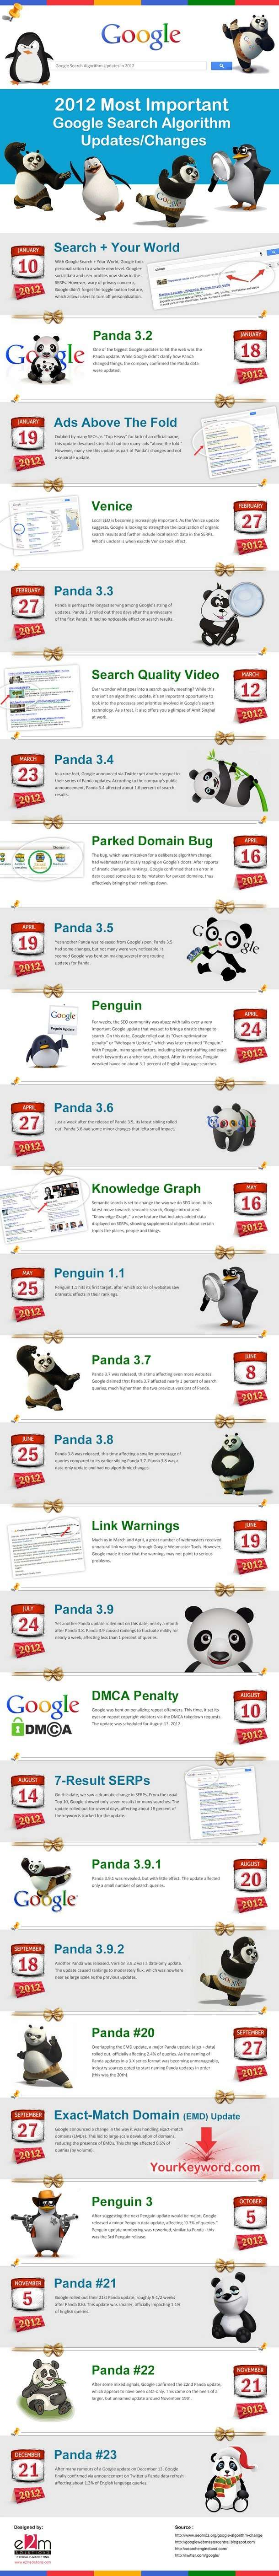 Google Search Algorithm Updates in 2012 INFOGRAPHIC